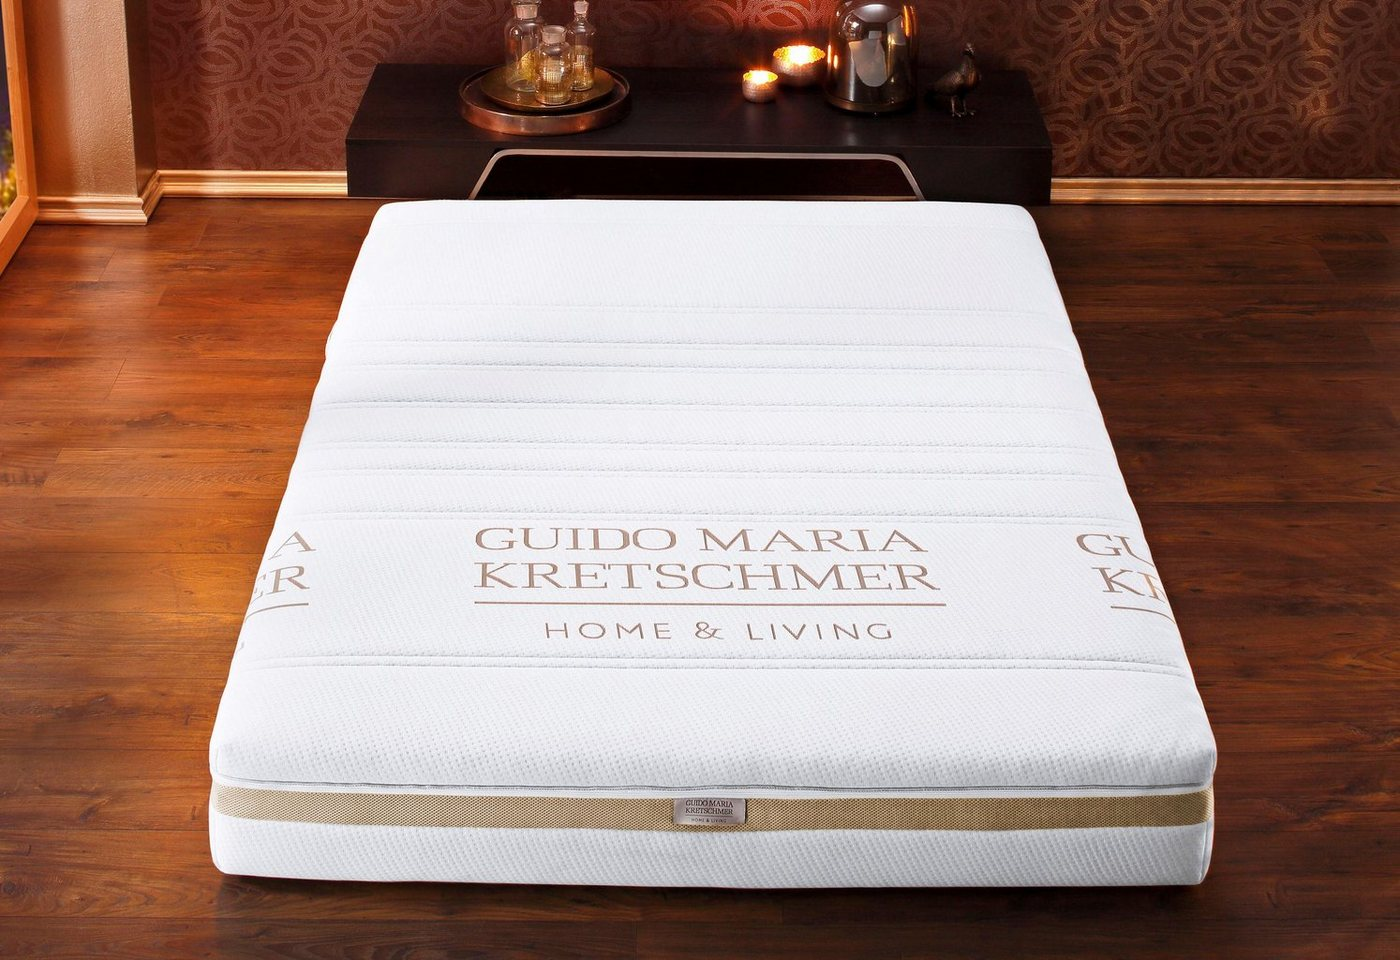 Koudschuimmatras, Body Premium KS, GMK Home & Living